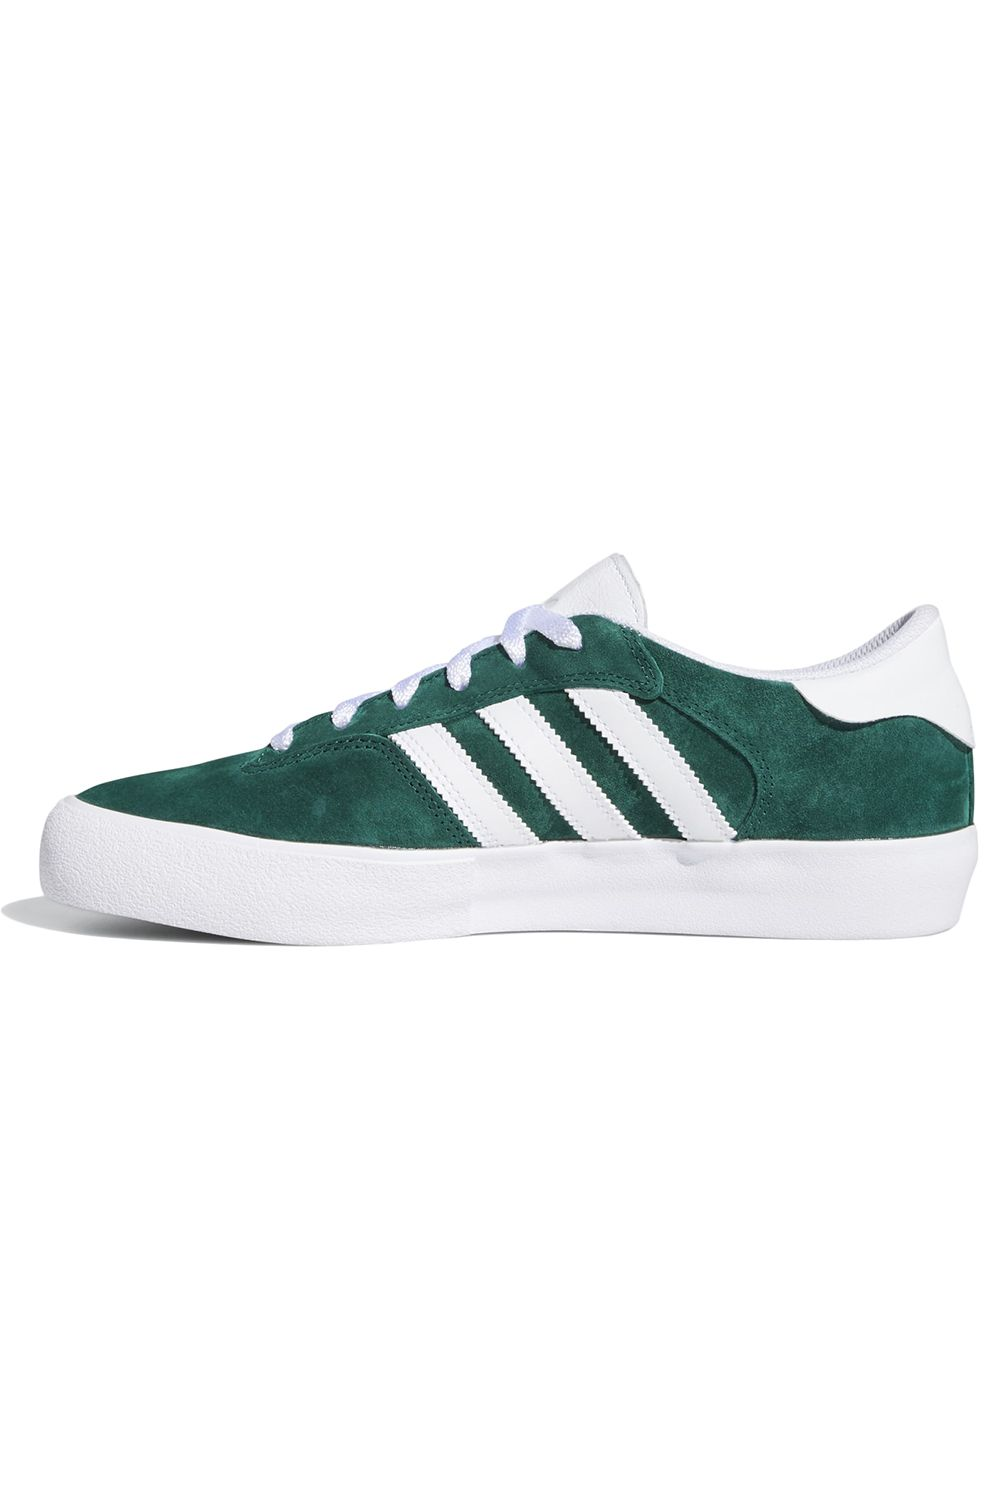 Tenis Adidas MATCHBREAK SUPER Customized/Ftwr White/Gold Met.